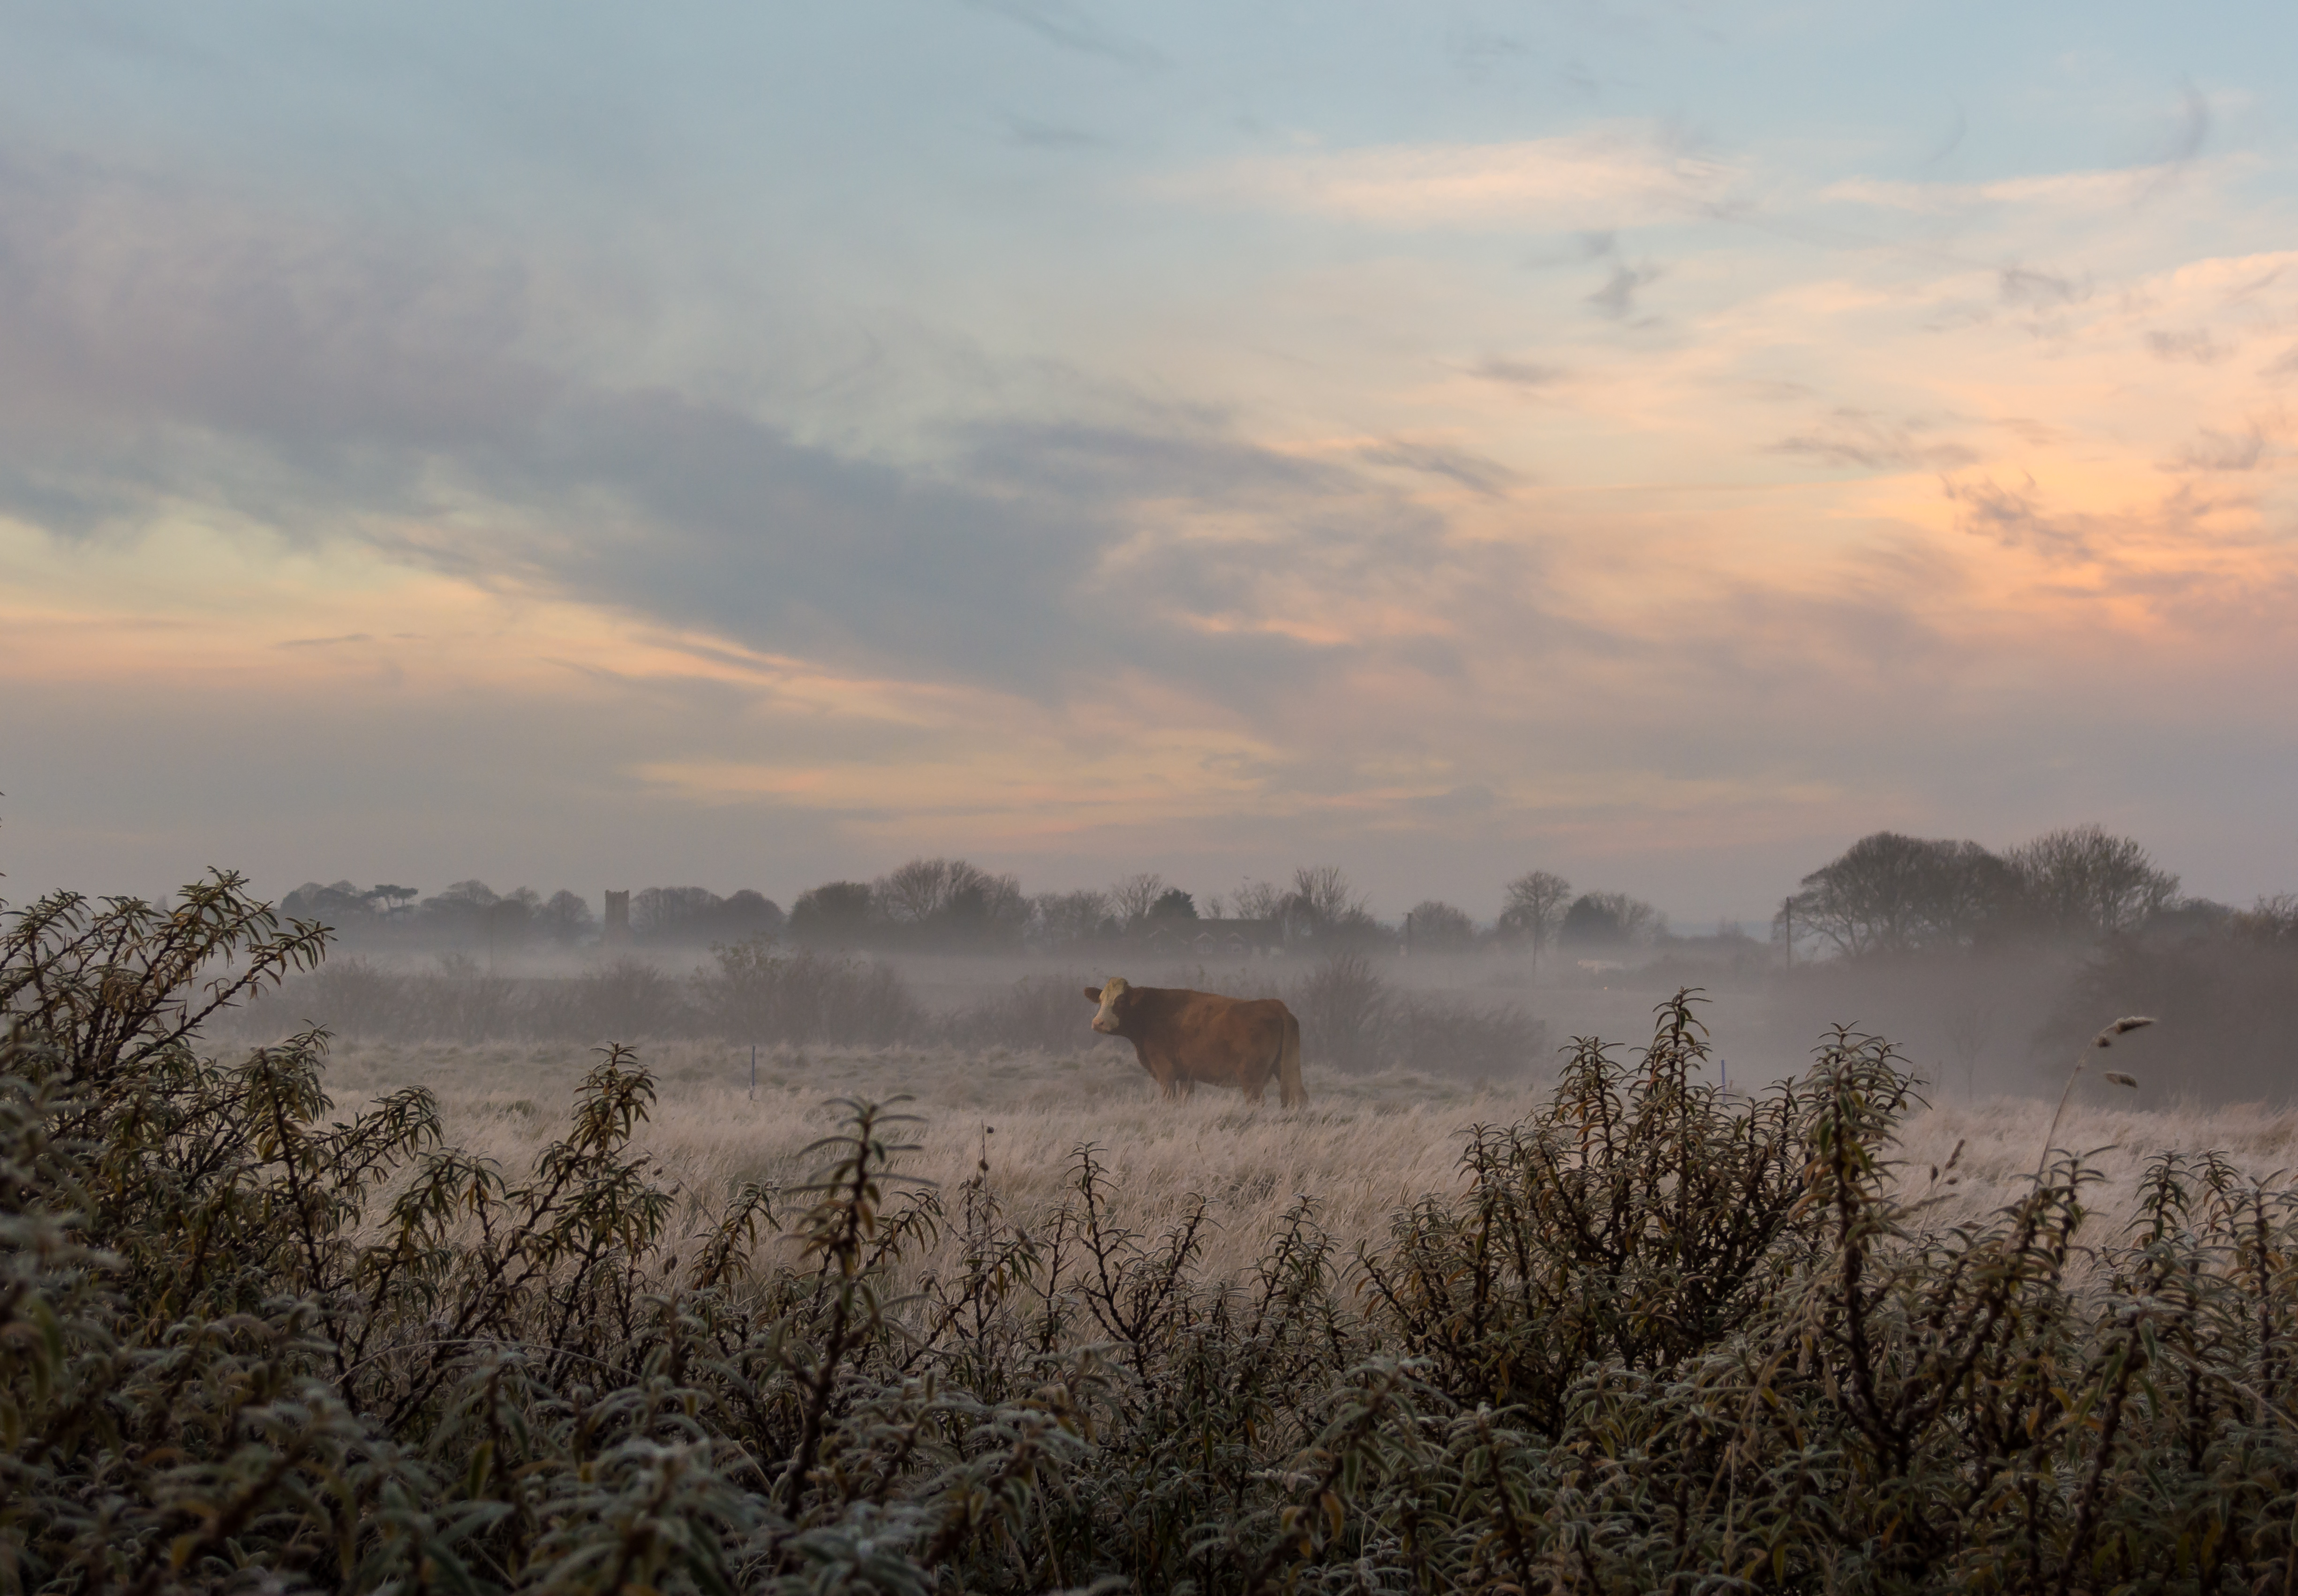 Cow in Mist 4